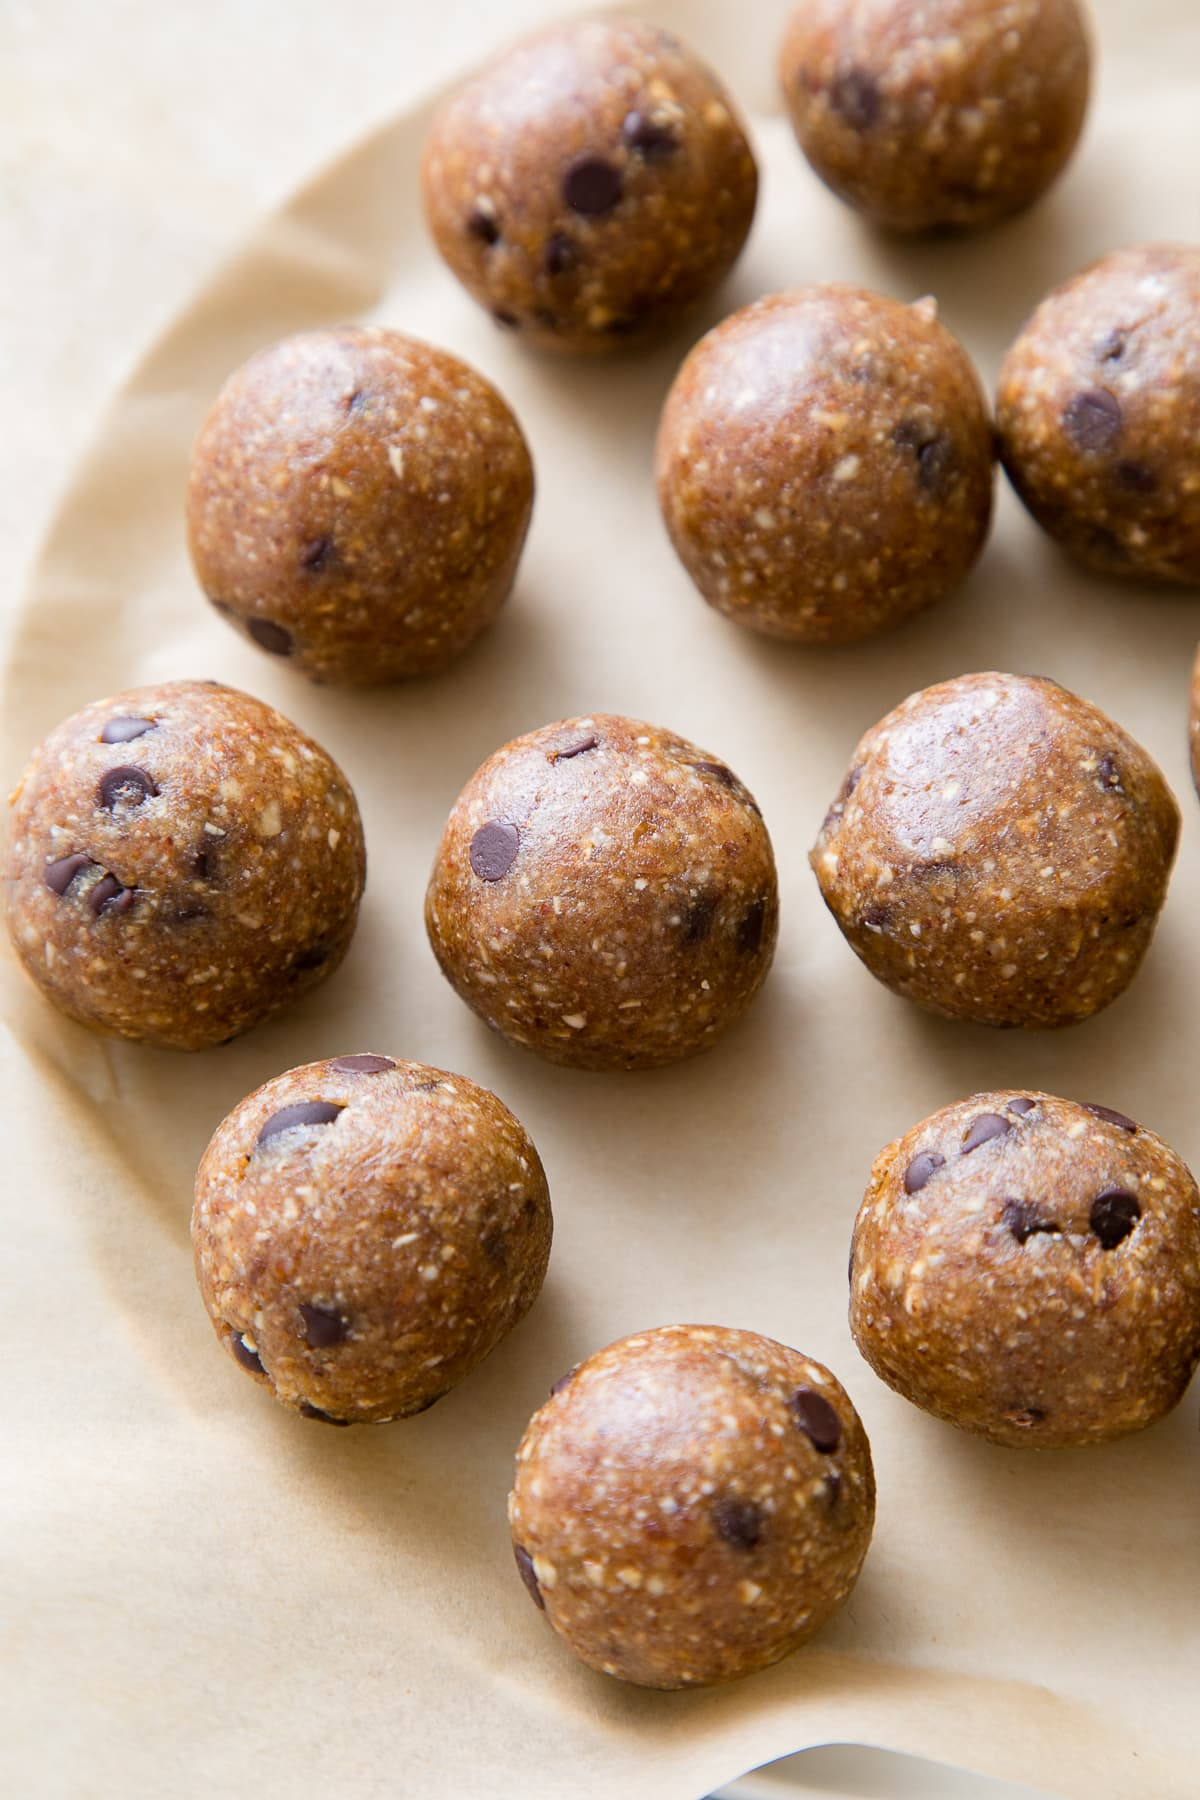 side angle view of chocolate chip energy bites on plate.